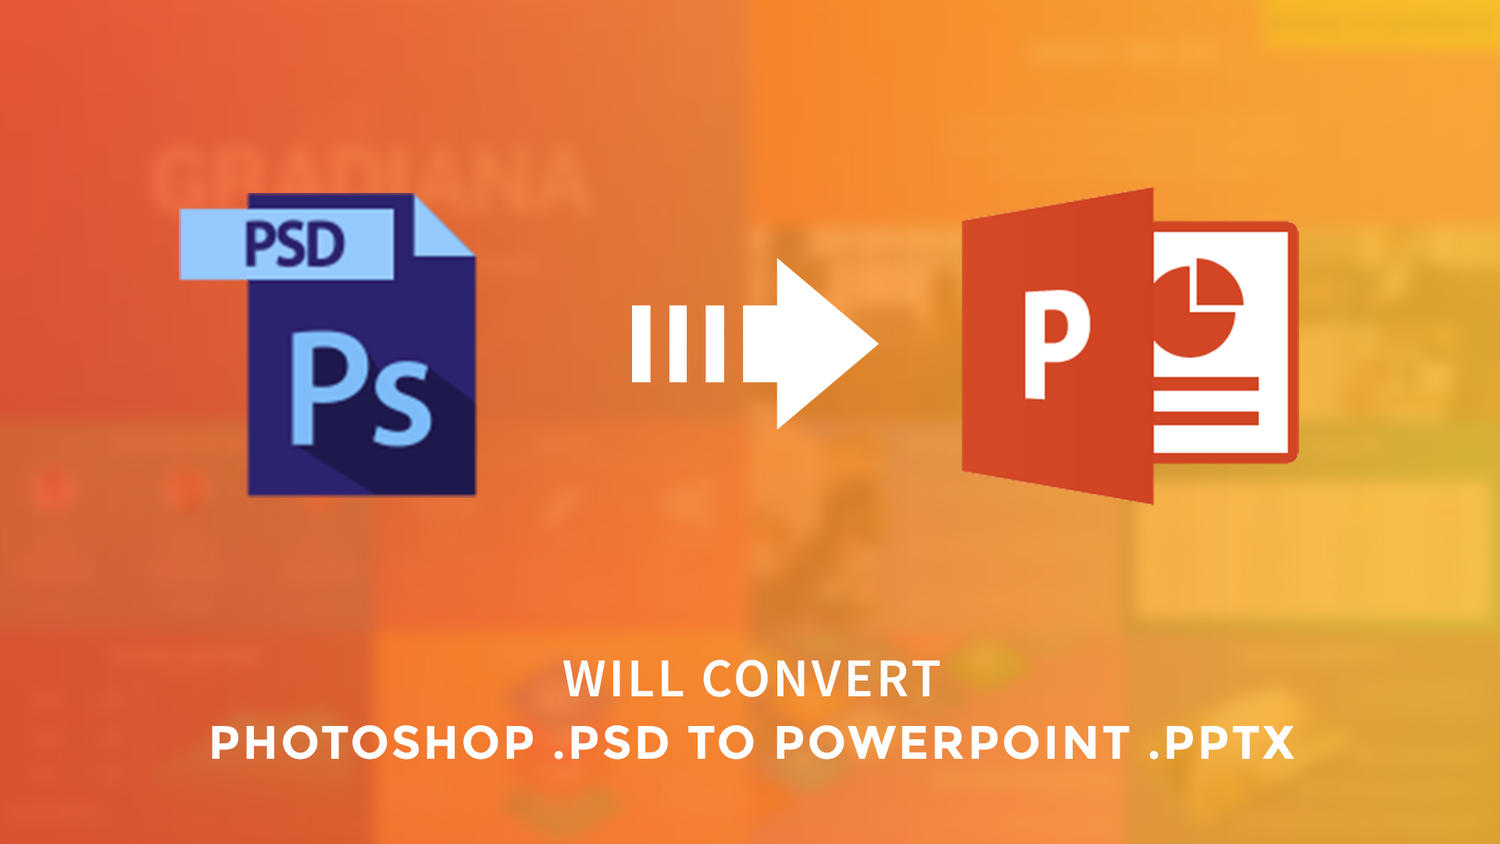 Photoshop psd to powerpoint presentation pptx by arvaone on envato photoshop psd to powerpoint presentation pptx toneelgroepblik Images